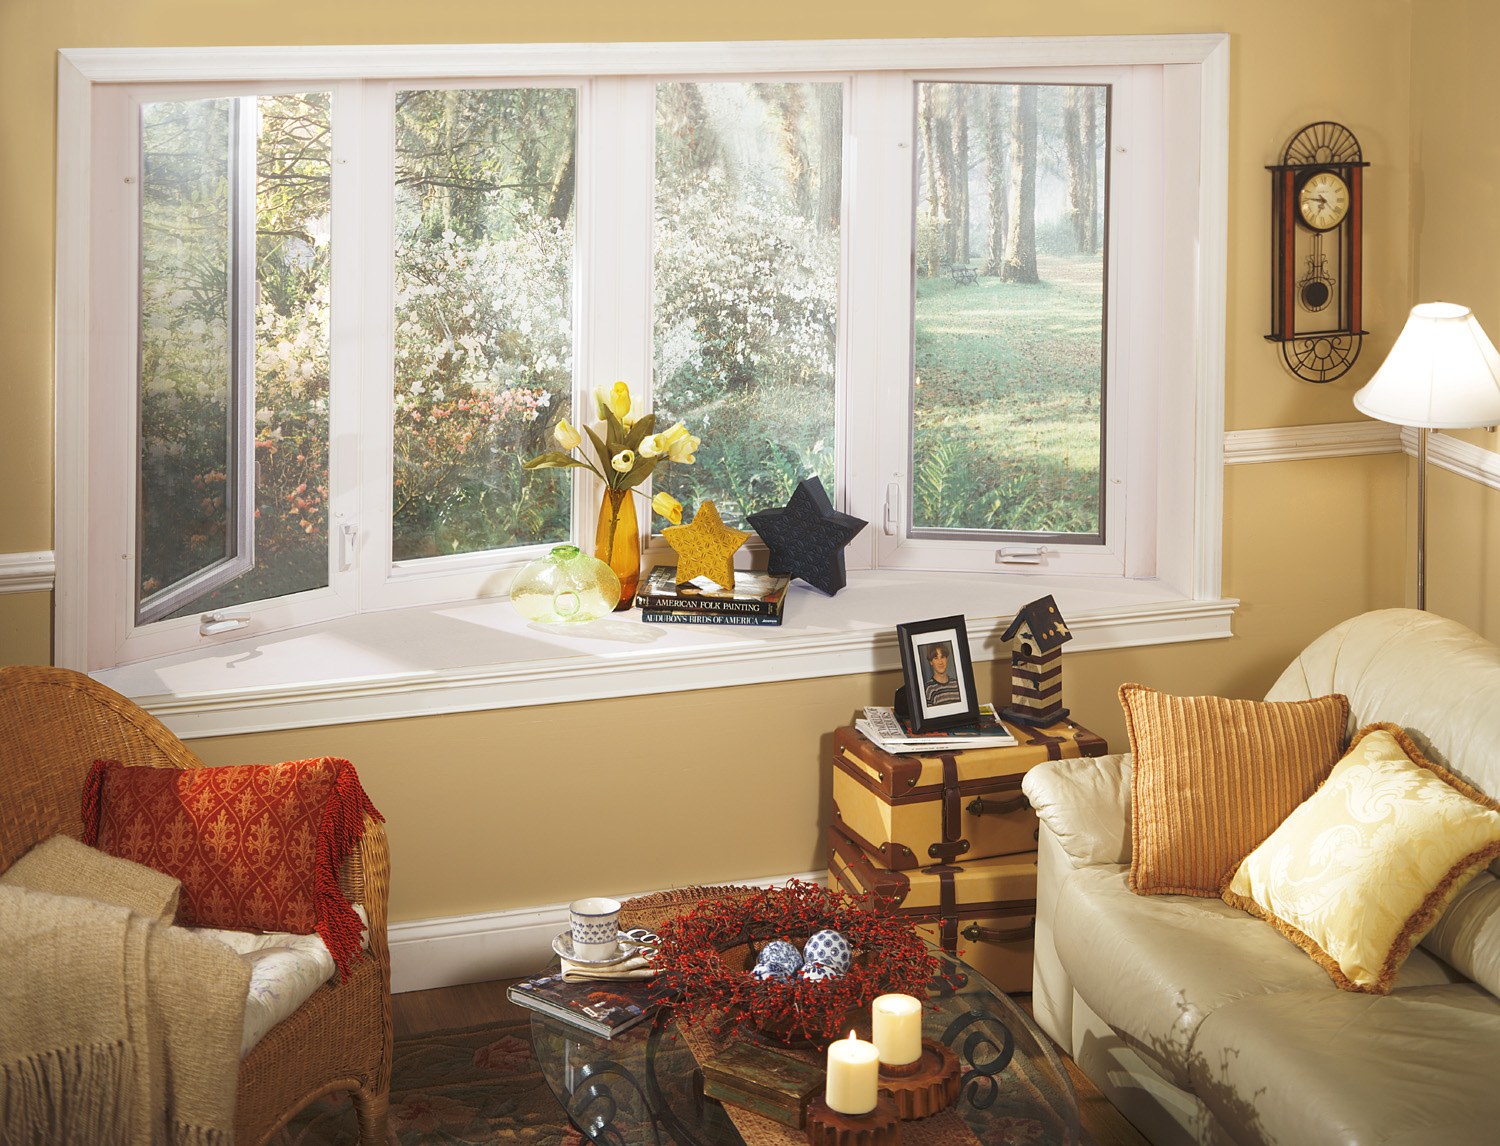 Decorating ideas to window treatments for casement windows Drapery treatments ideas